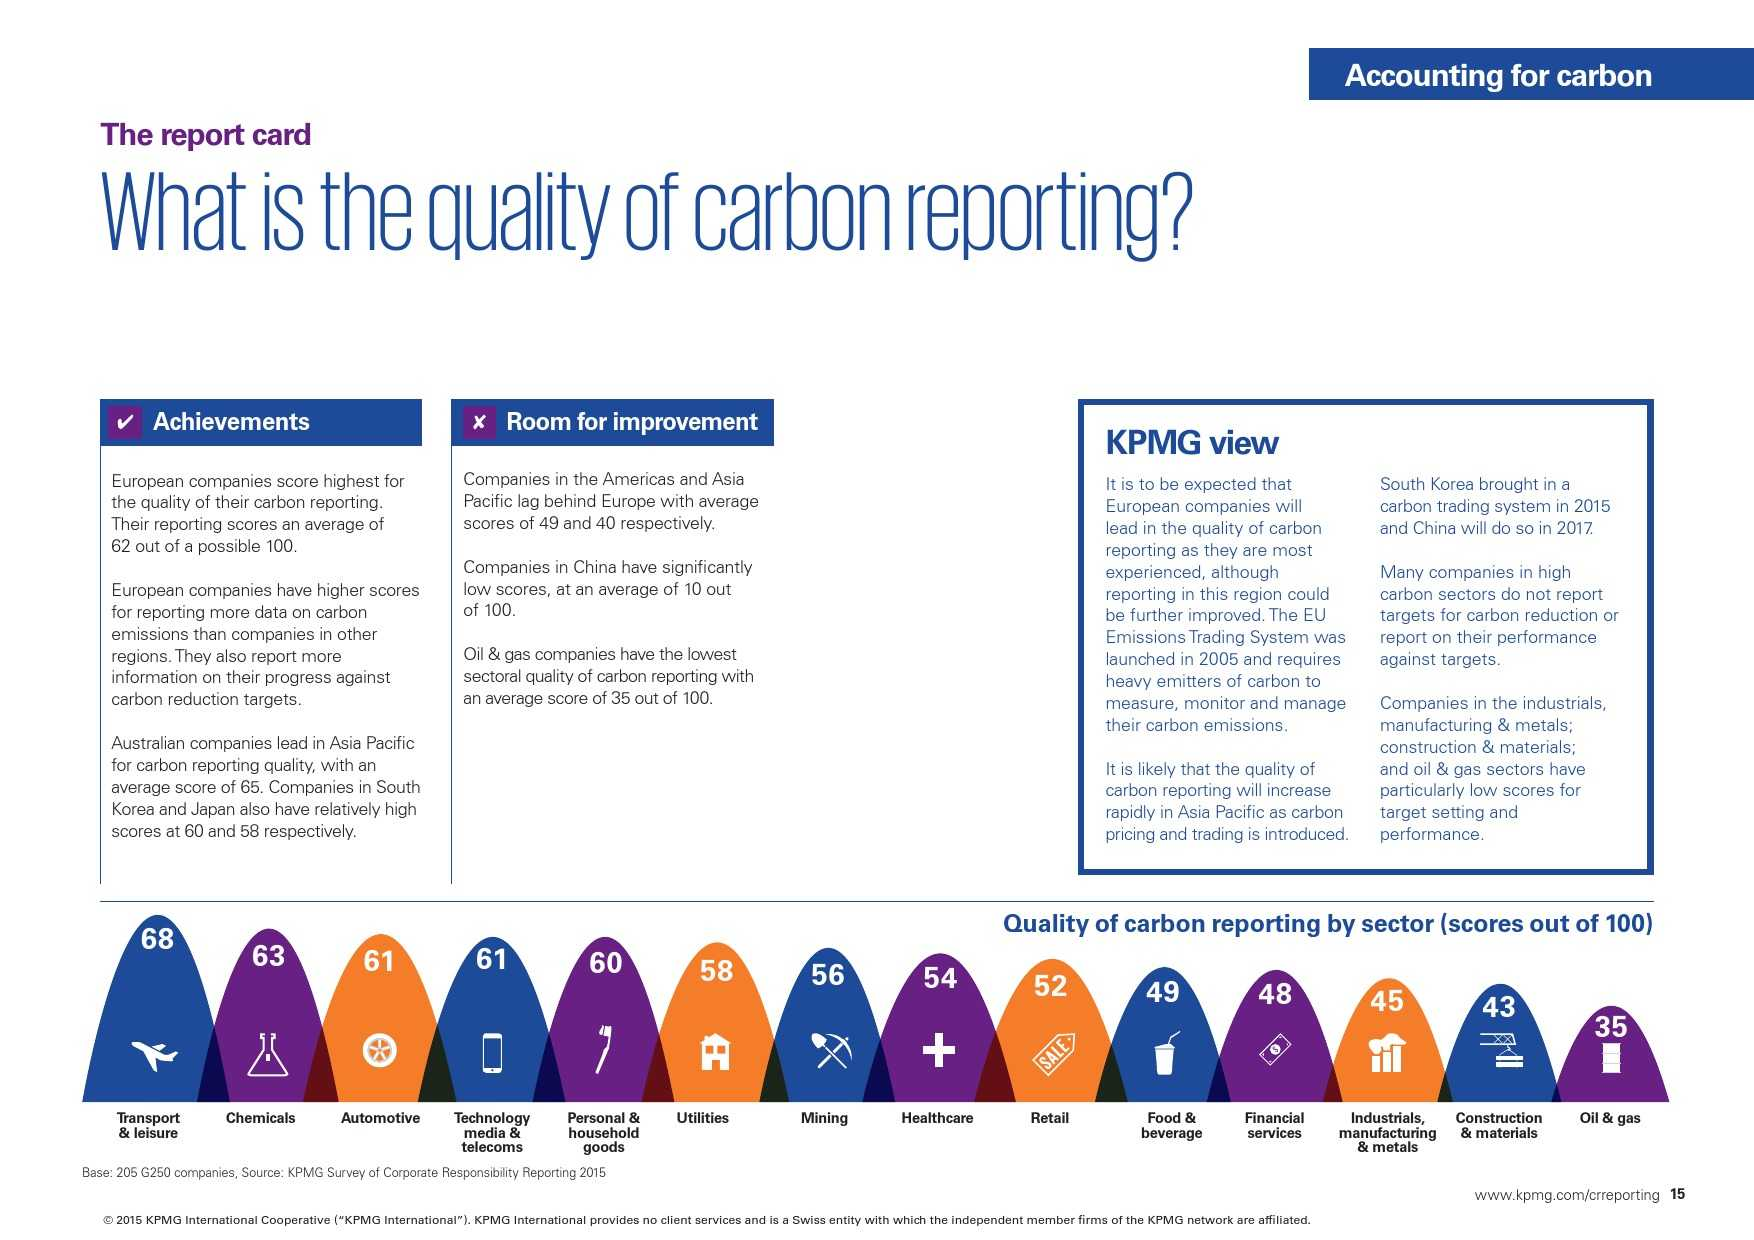 kpmg-international-survey-of-corporate-responsibility-reporting-2015_000015